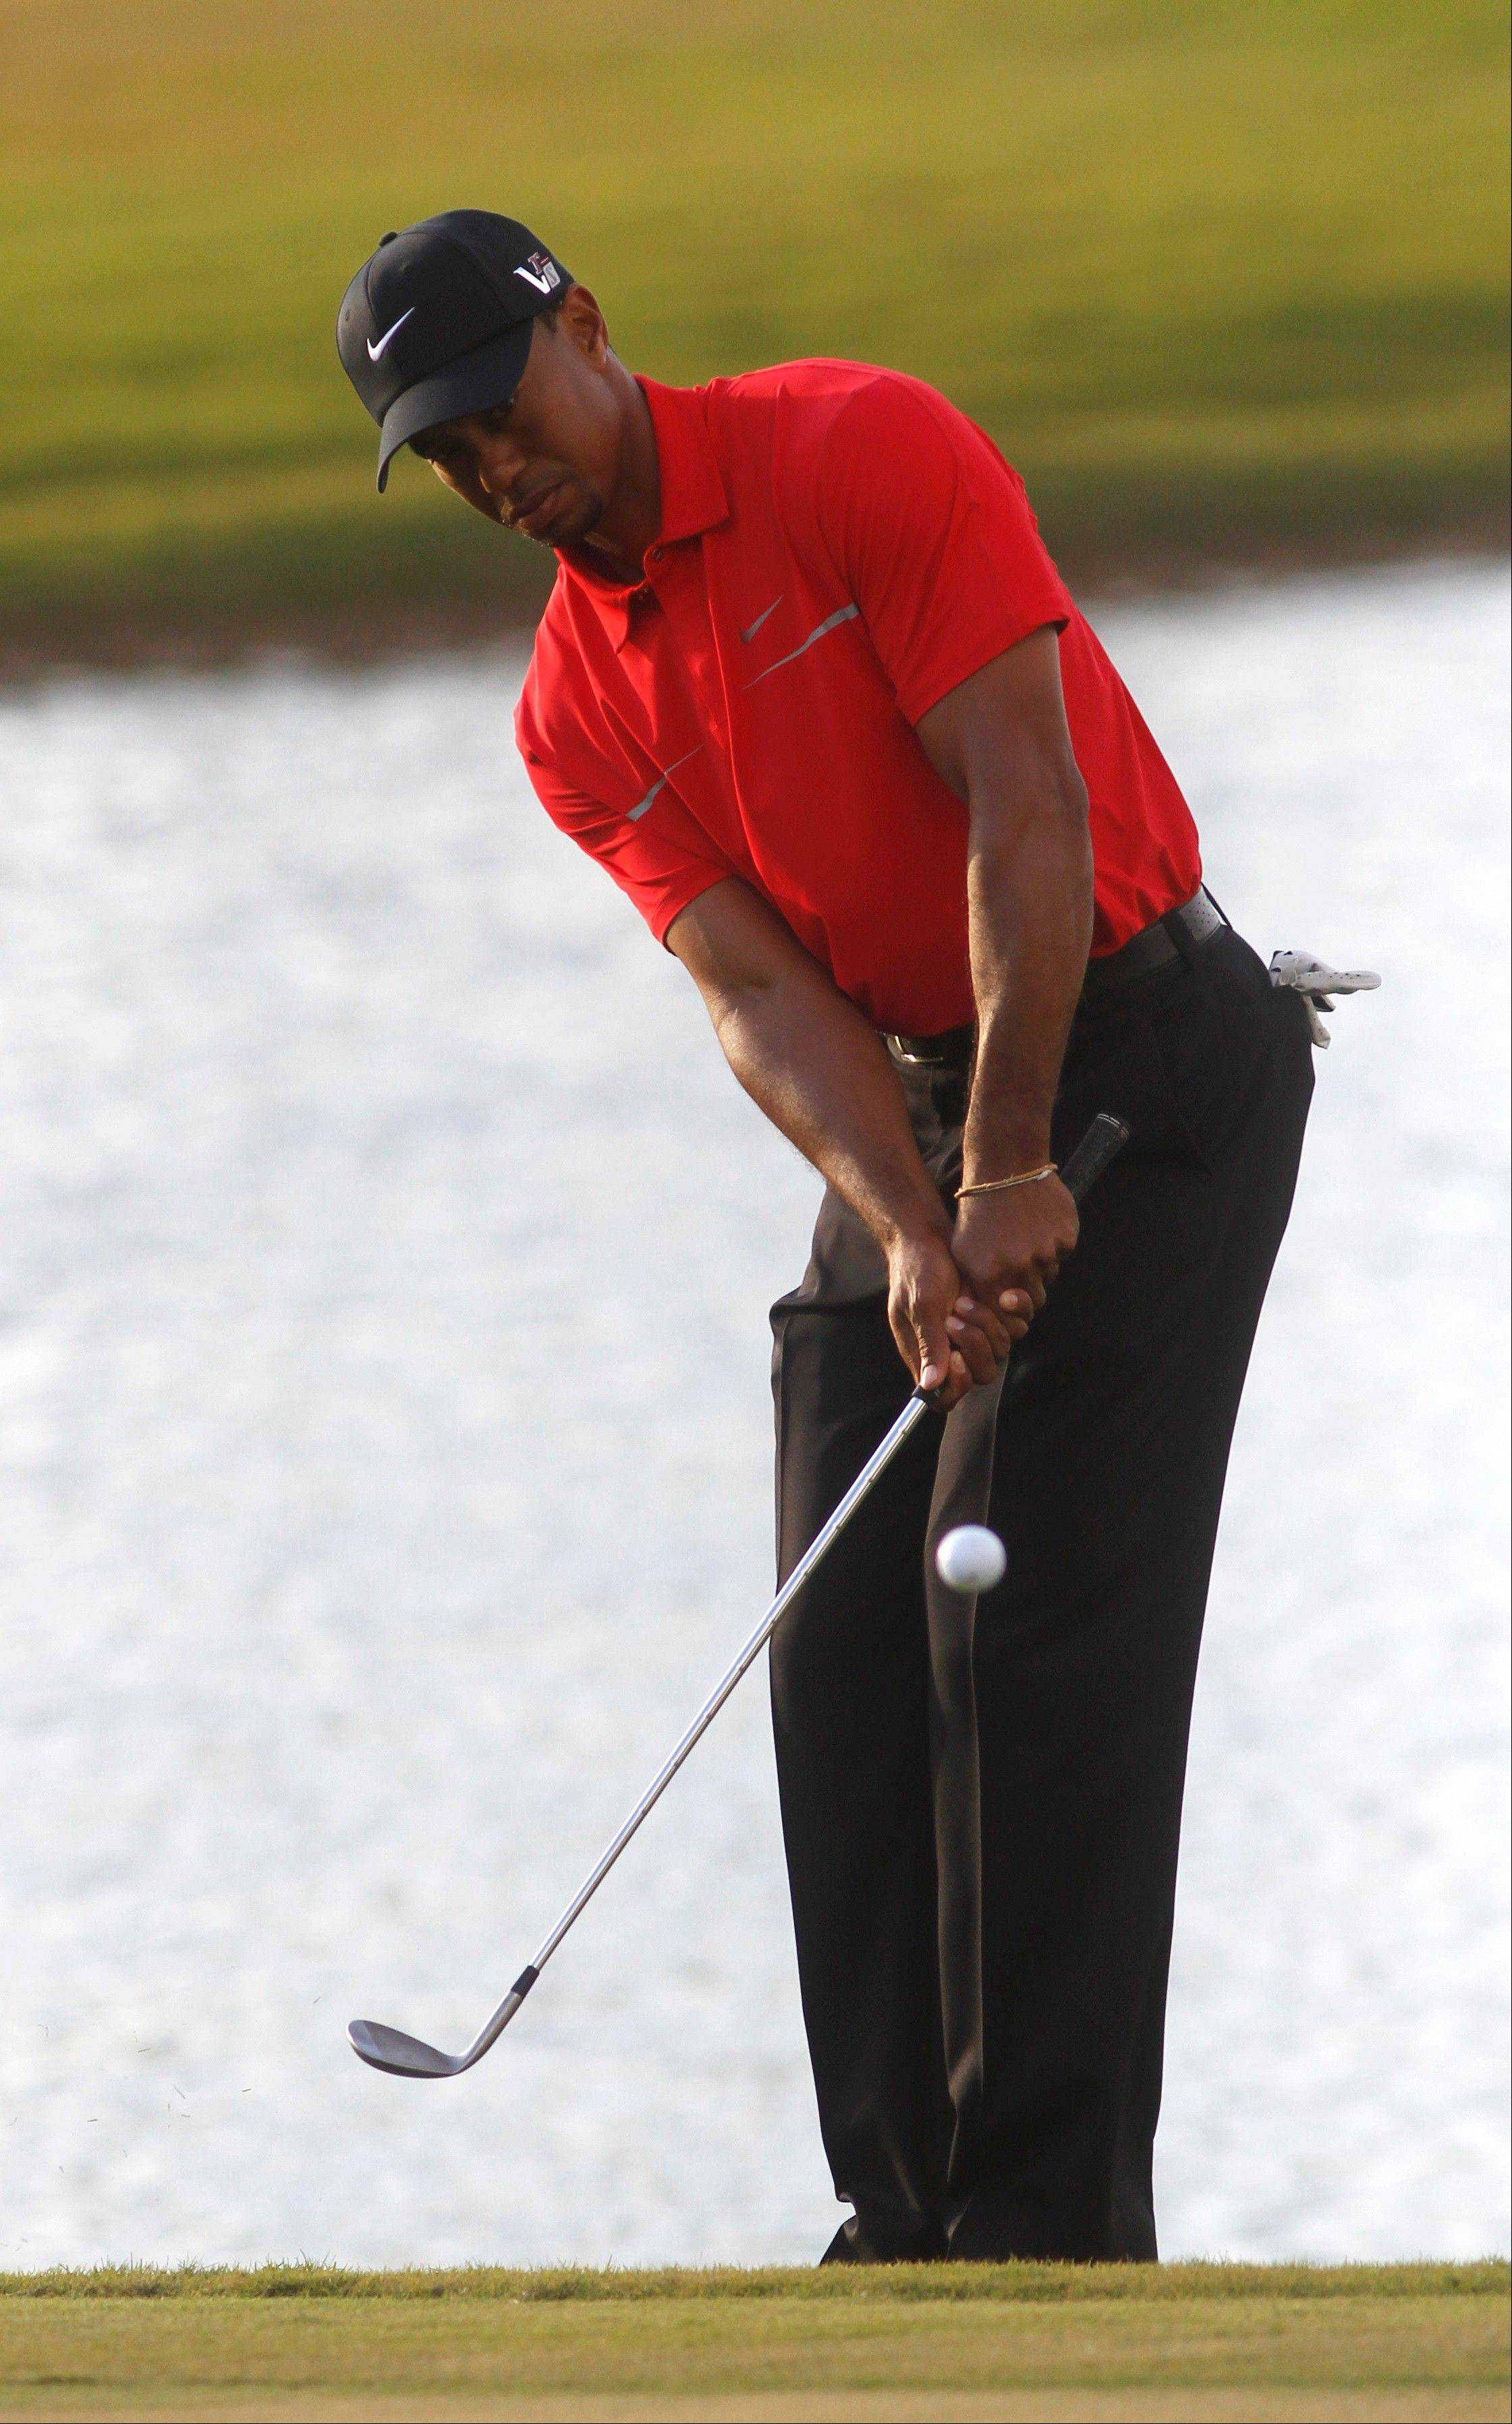 Tiger Woods hits from the rough on the 18th holde during the third round of the Cadillac Championship golf tournament Sunday, March 10, 2013, in Doral, Fla. Woods won the Cadillac Championship with a score 19-under-par 269.